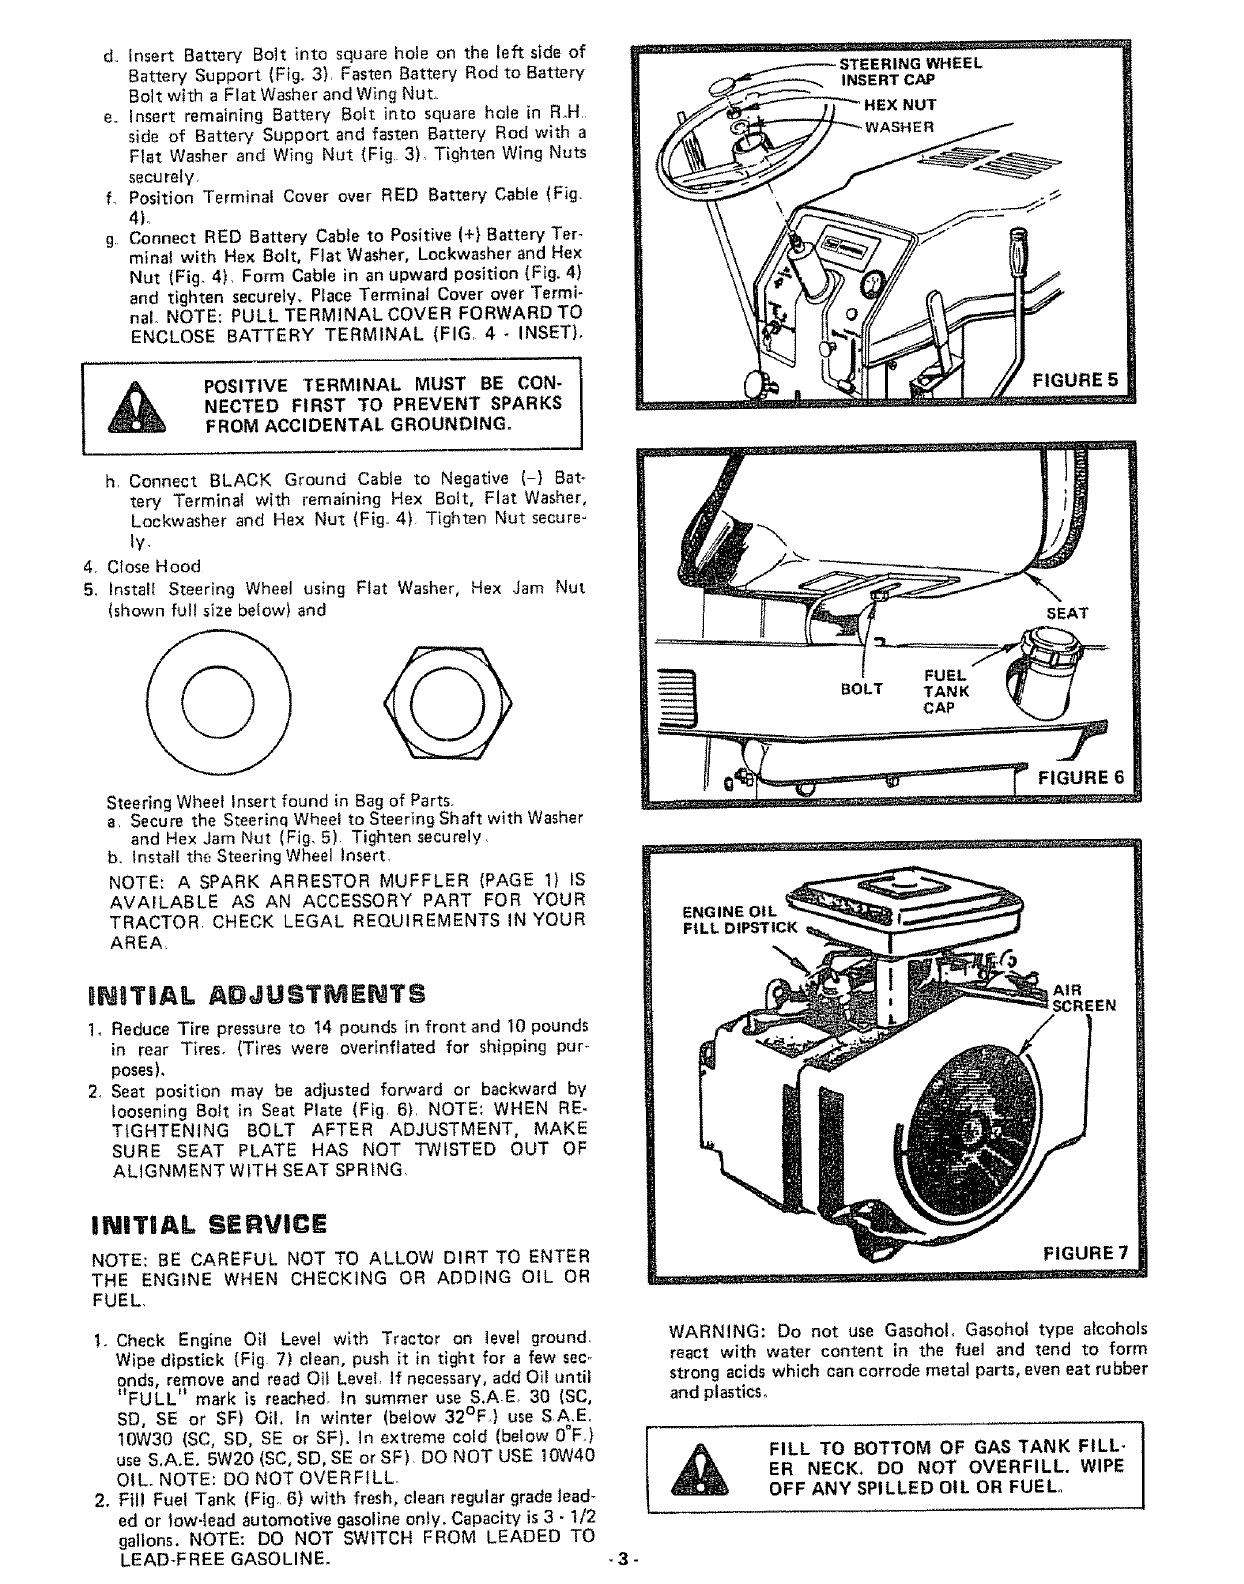 Page 5 of Craftsman Lawn Mower 917 253724 User Guide